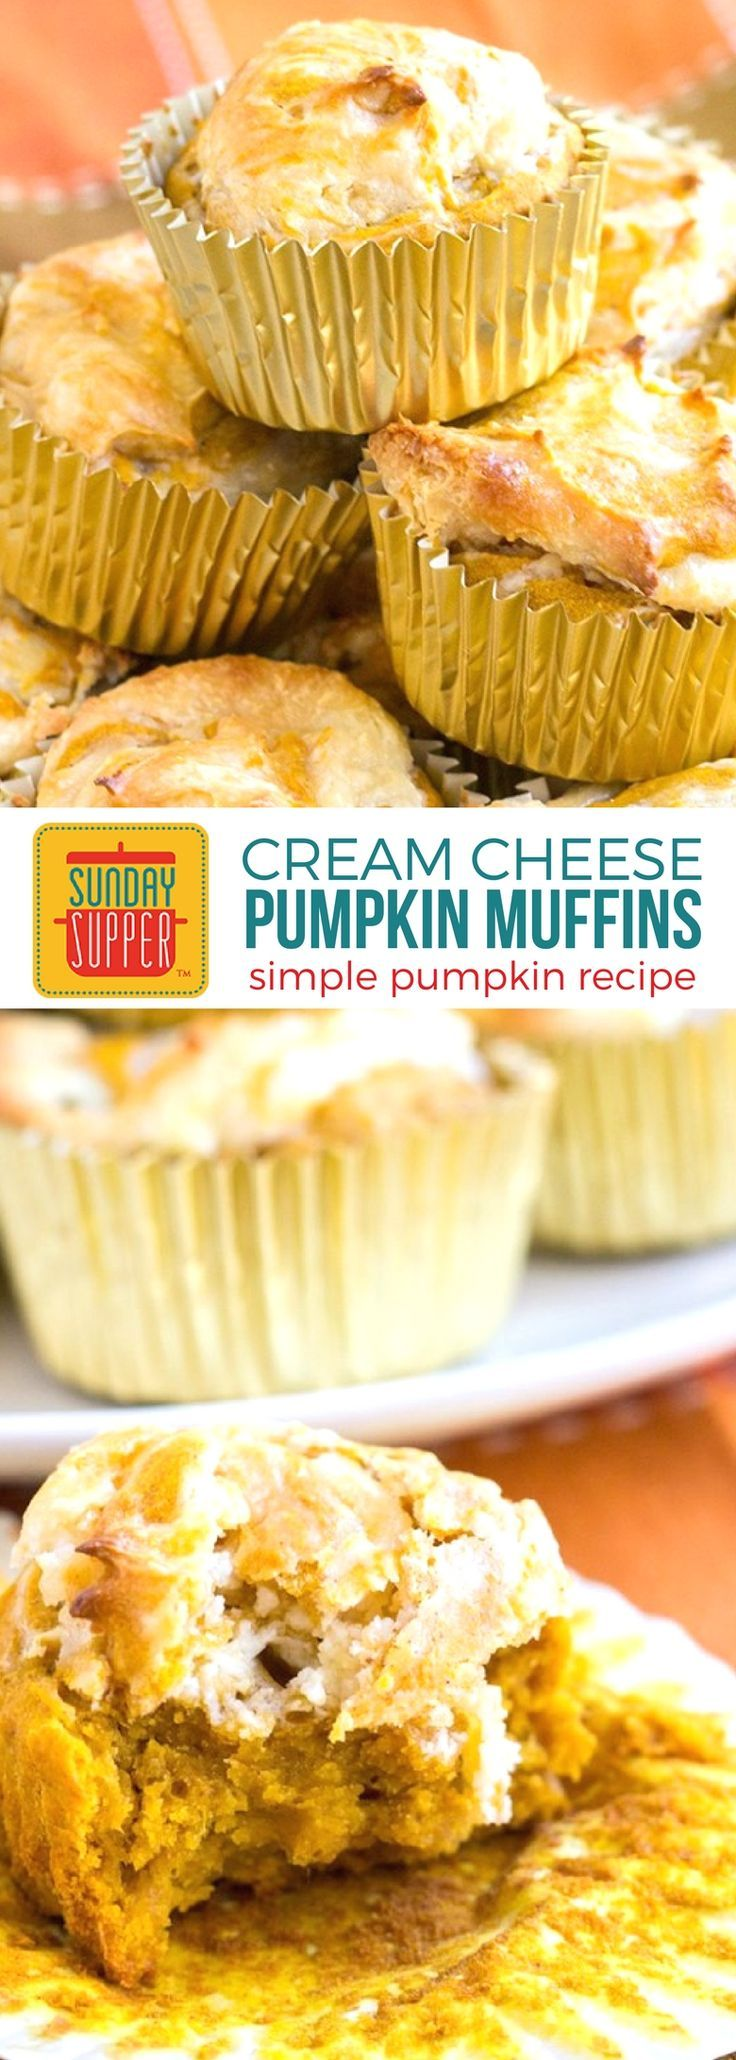 Bake up our Pumpkin Cream Cheese Muffins for an easy fall treat ...